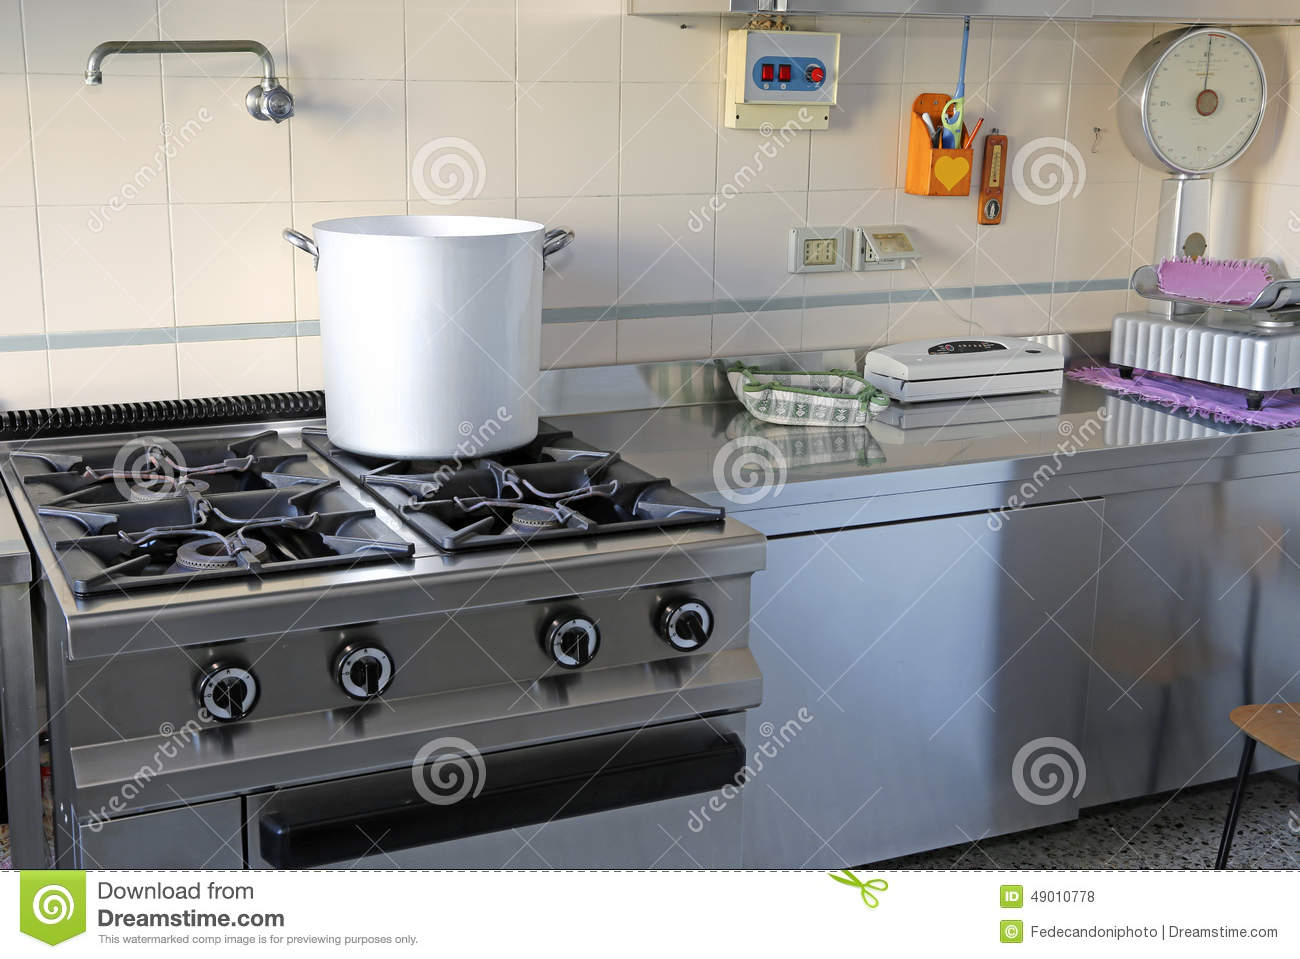 Industrial Kitchen With Gas Stove And The Giant Aluminum Pot